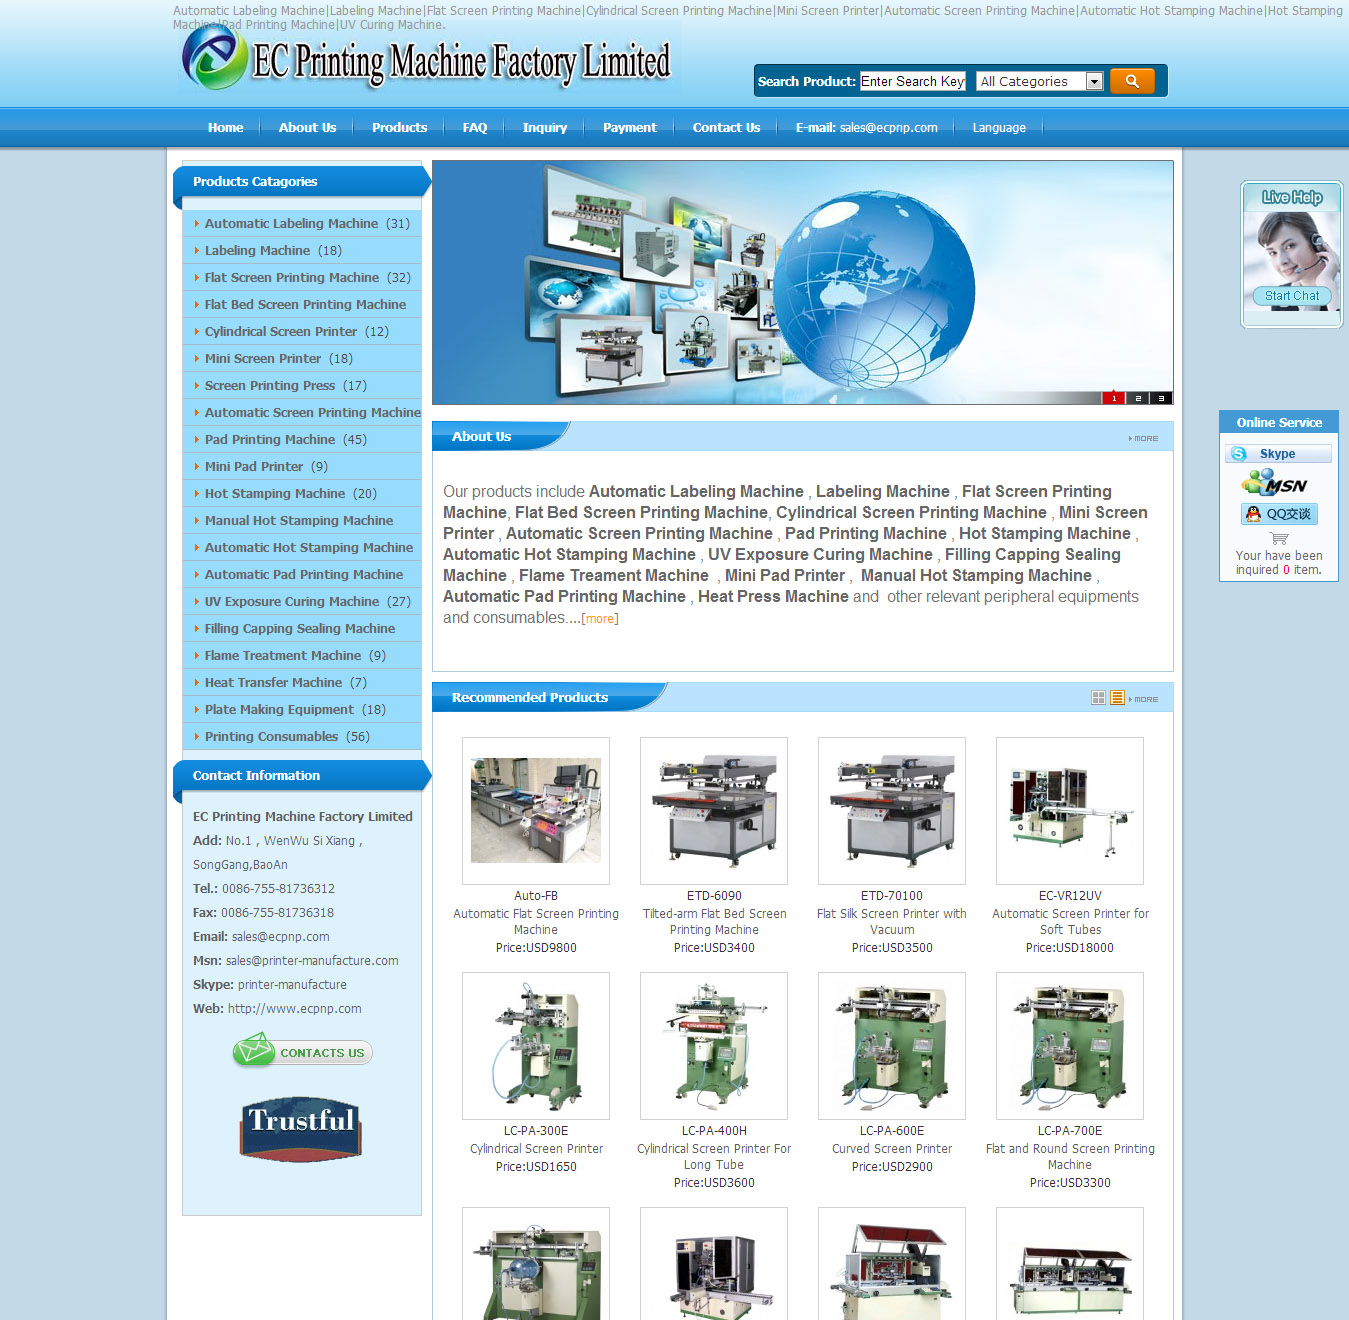 EC Printing Machine Factory Limited